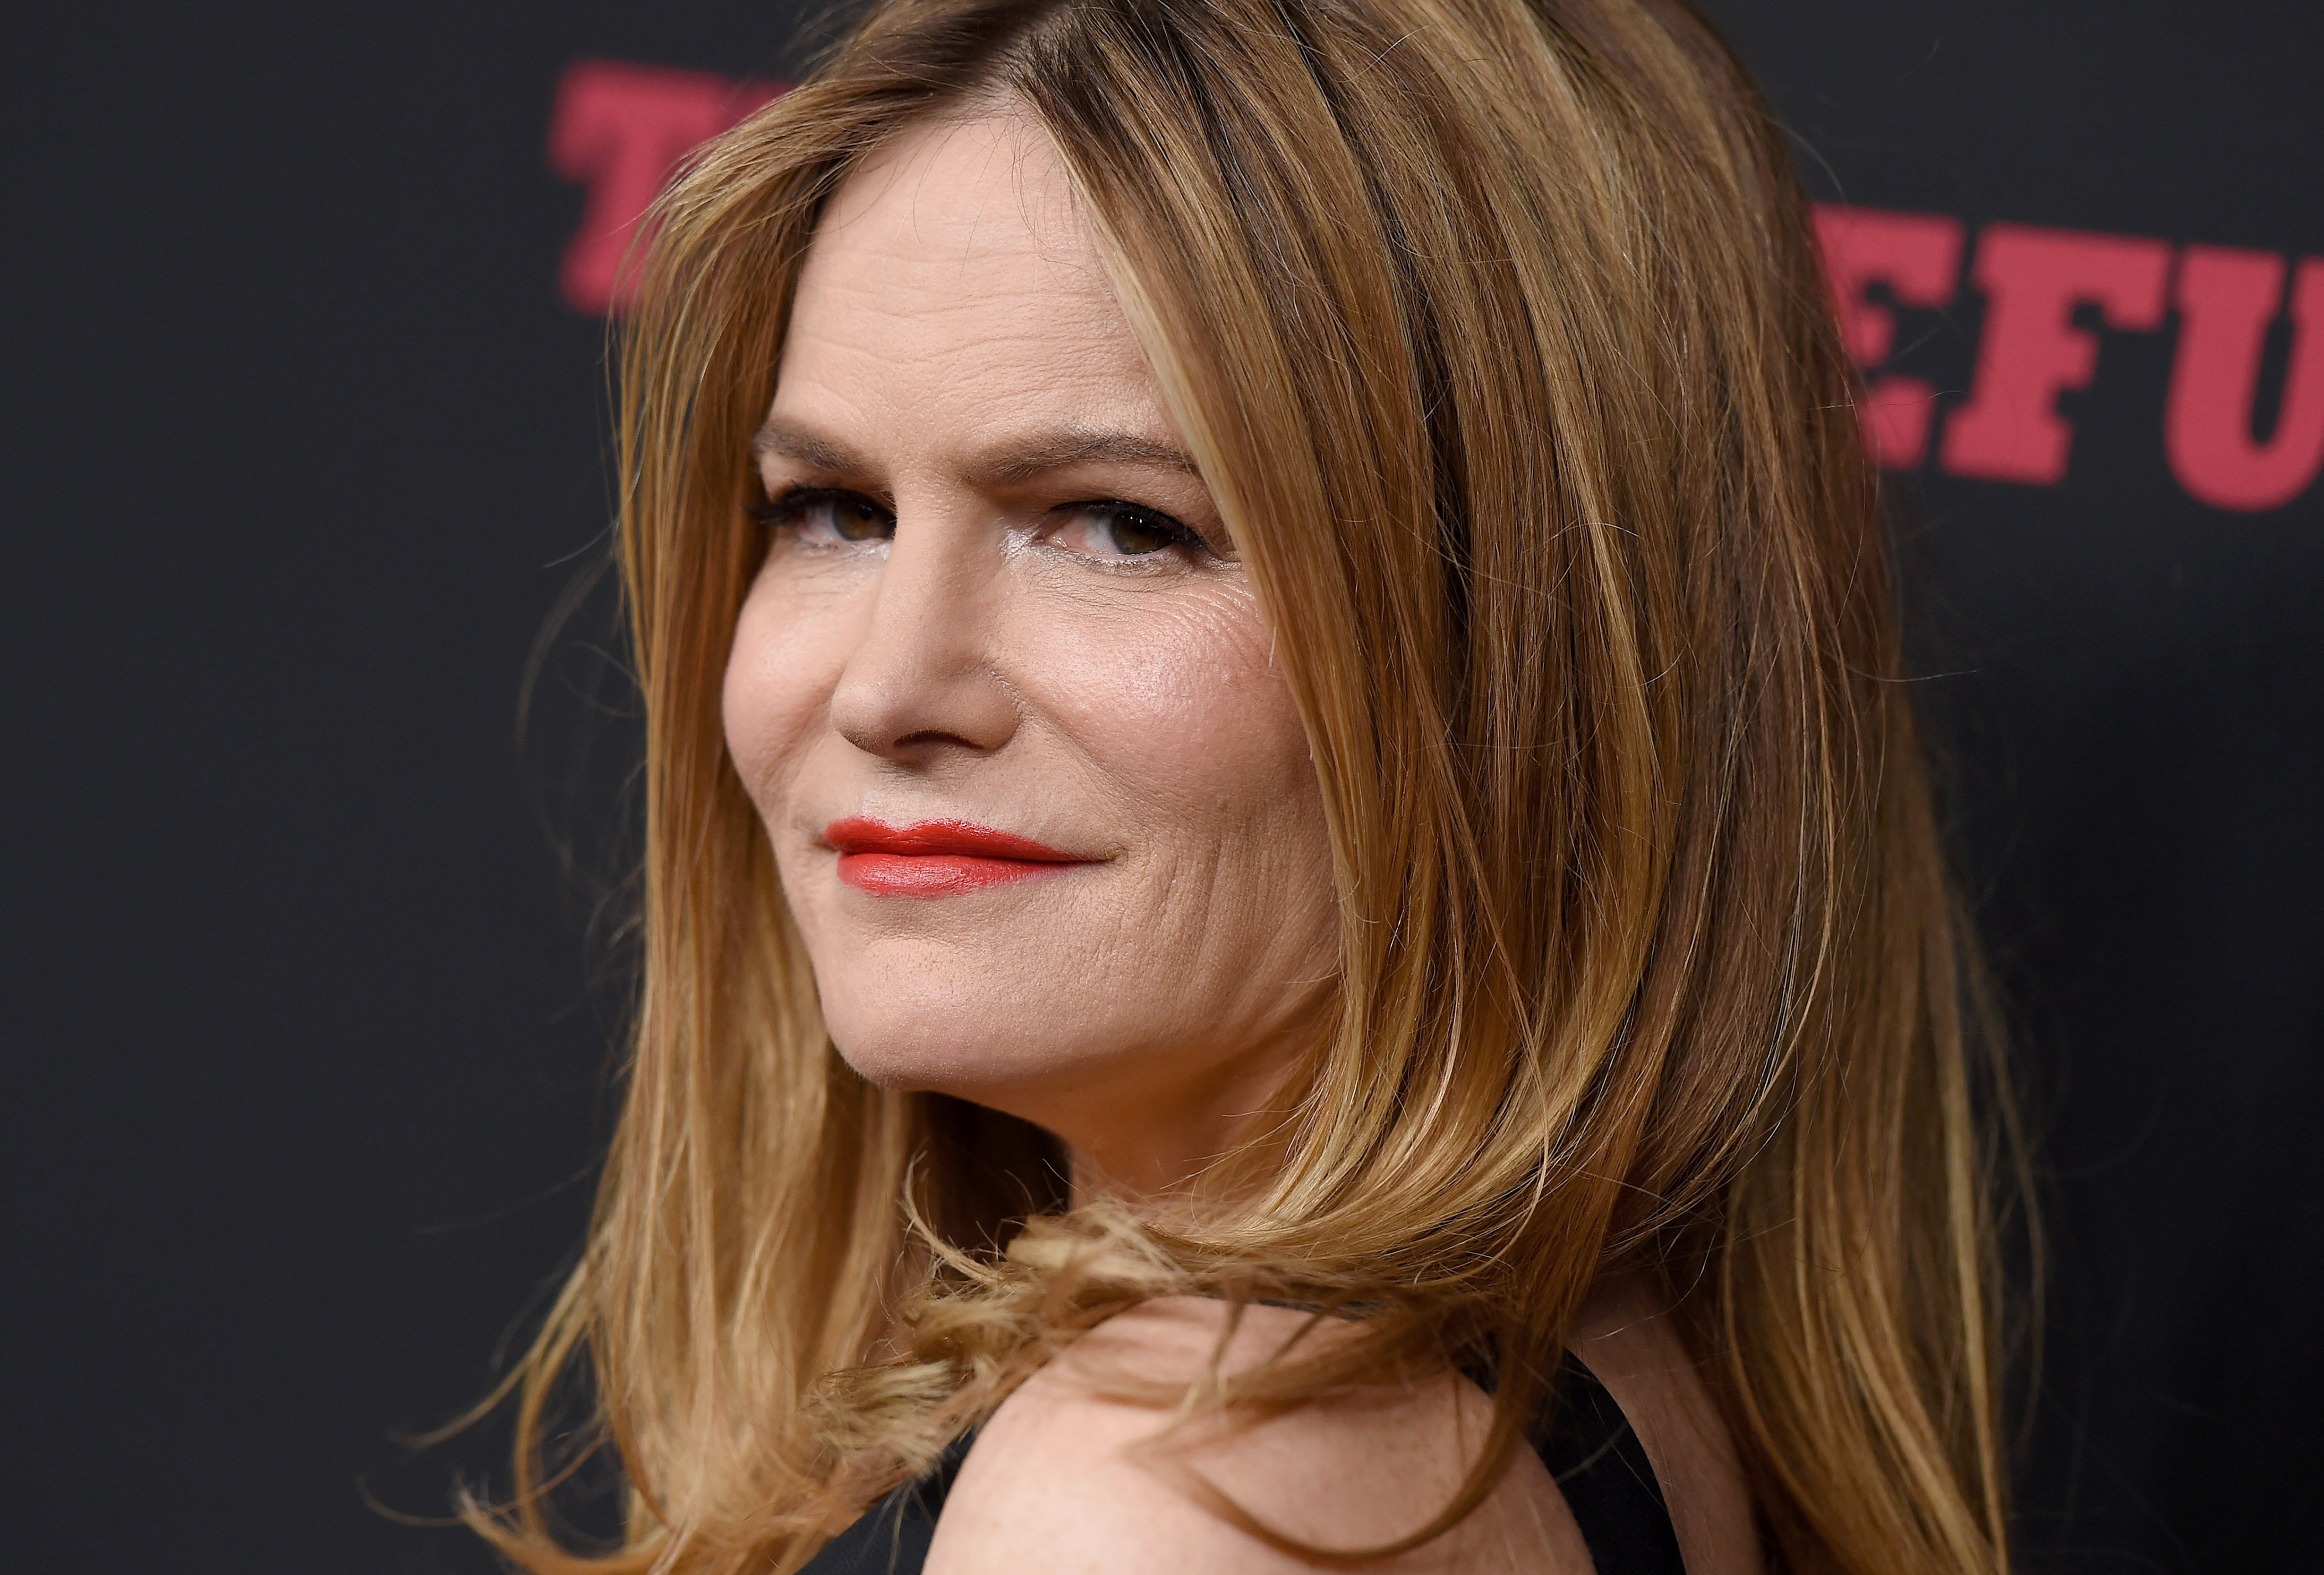 Actress Jennifer Jason Leigh arrives at the Los Angeles Premiere of 'The Hateful Eight' at ArcLight Cinemas Cinerama Dome on December 7, 2015 in Hollywood, California.   Source: Getty Images